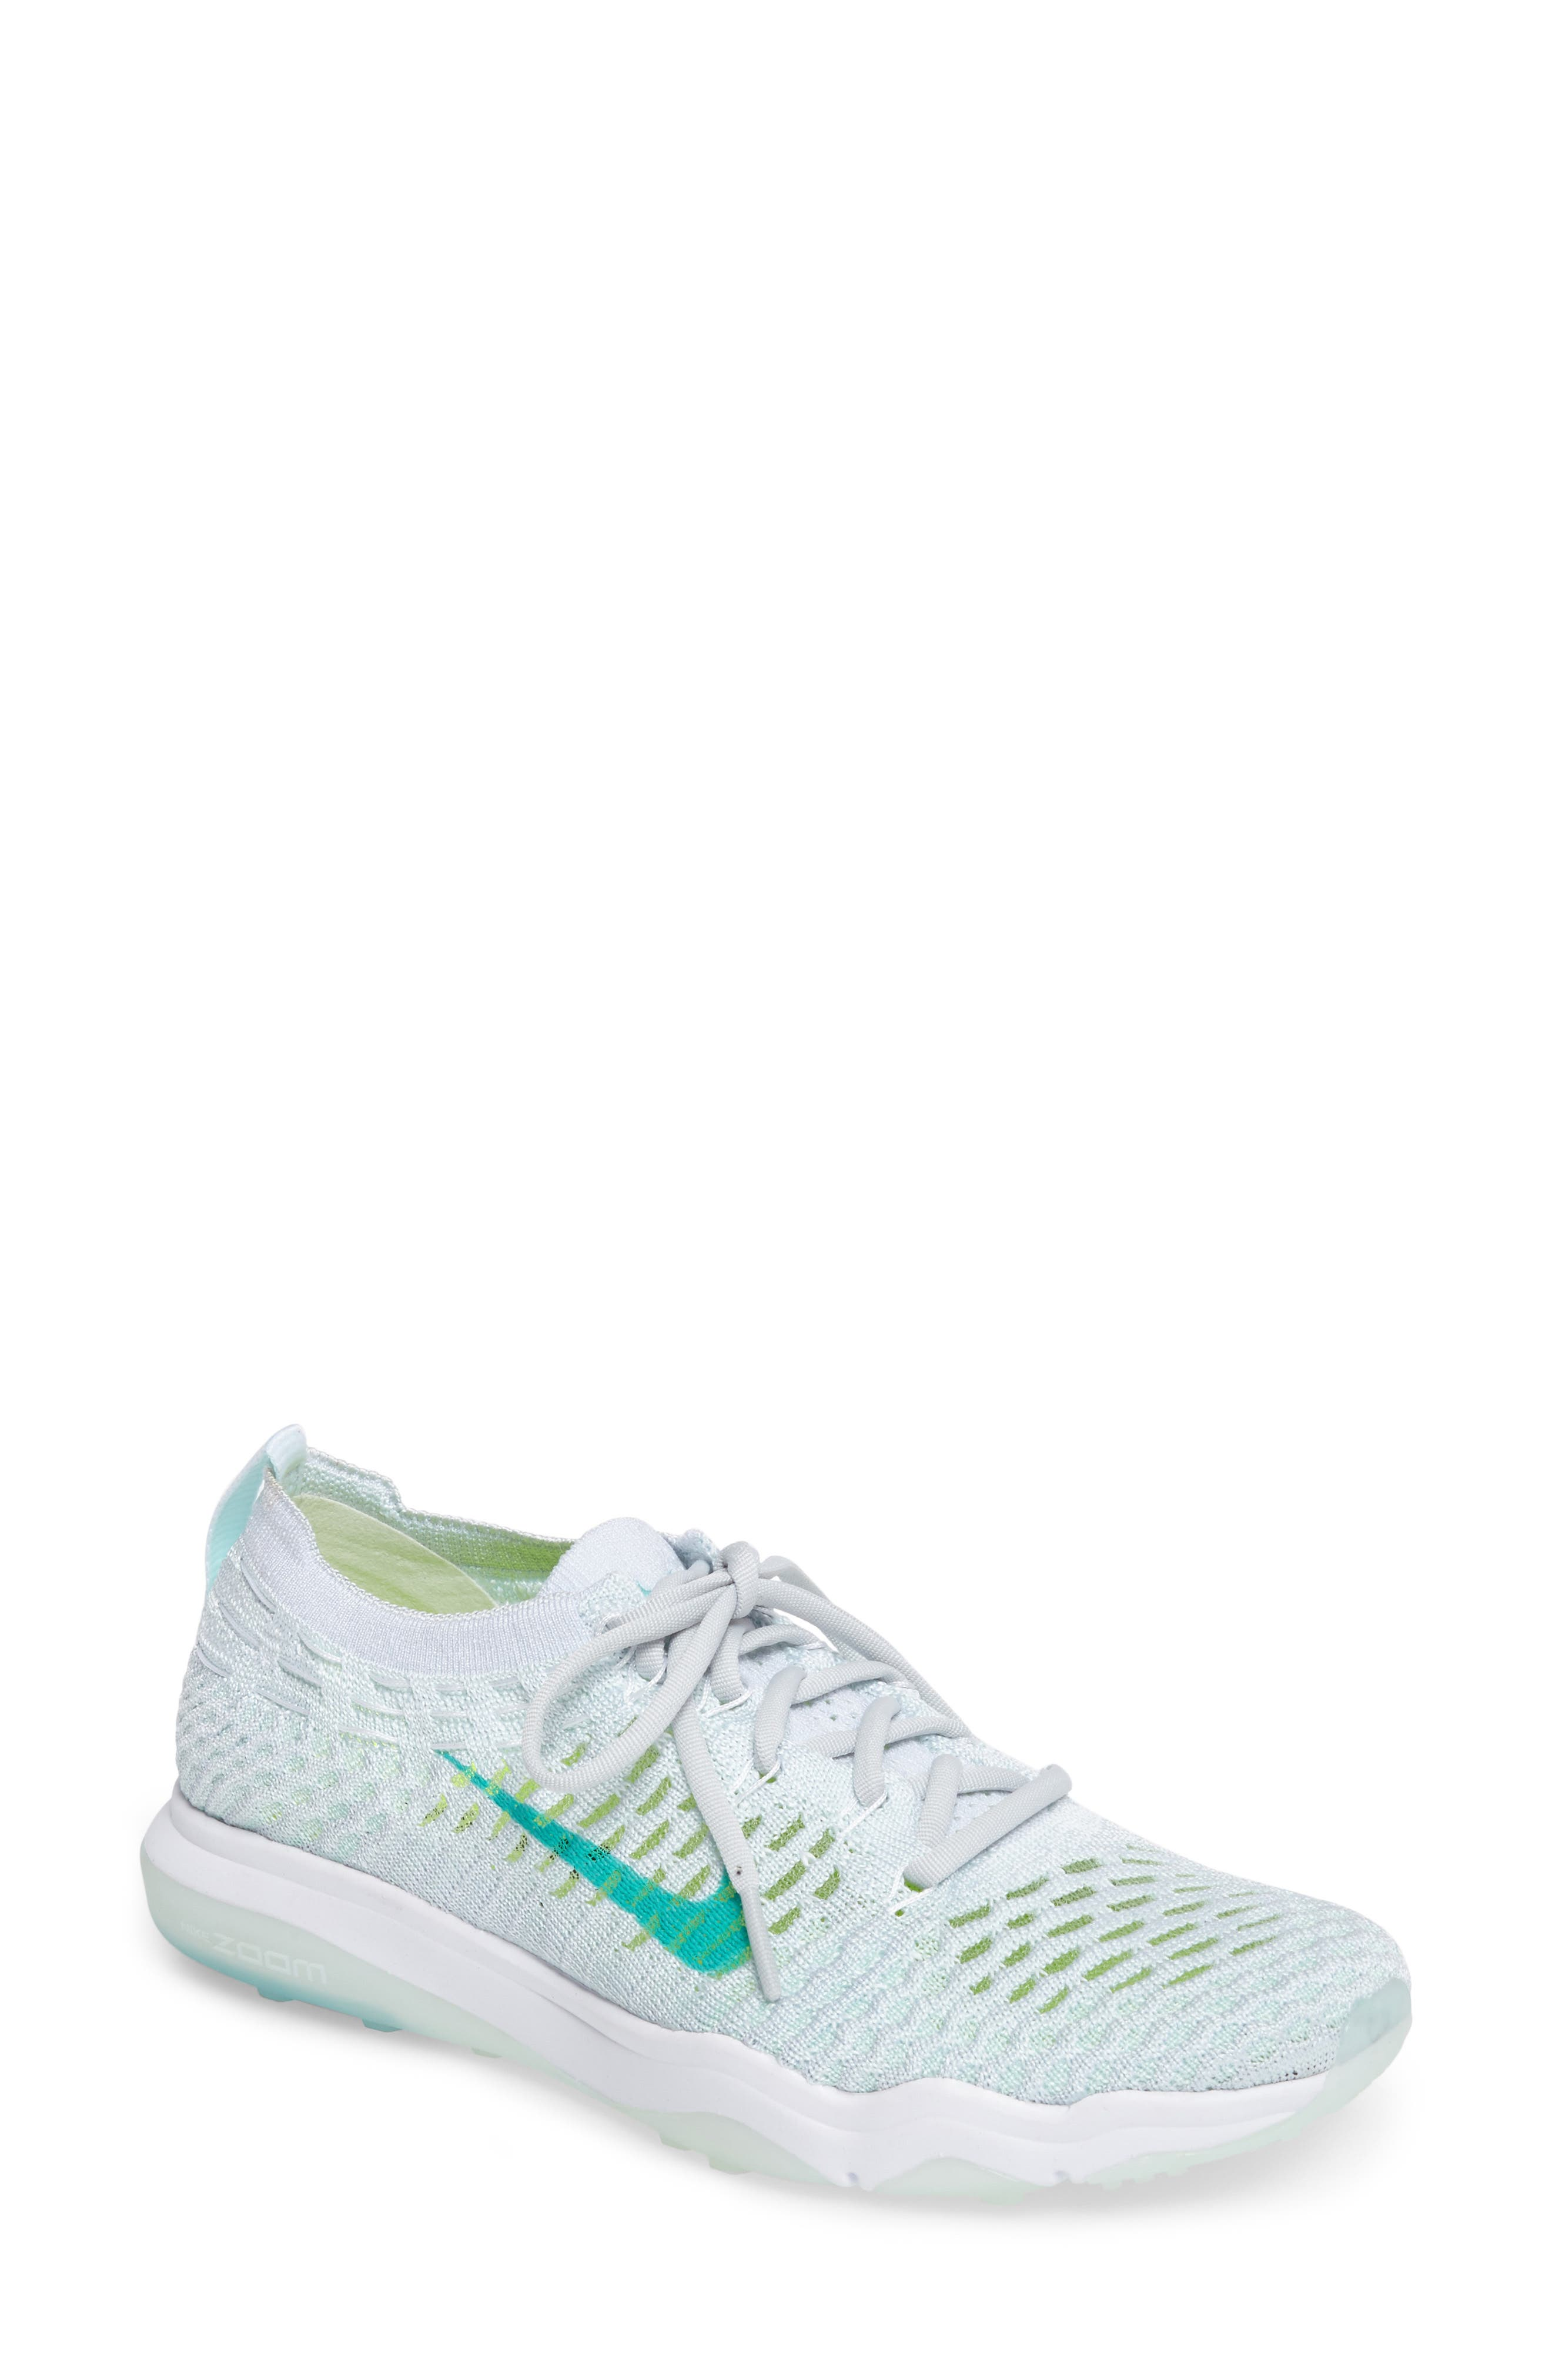 Air Zoom Fearless Flyknit Training Shoe,                             Main thumbnail 4, color,